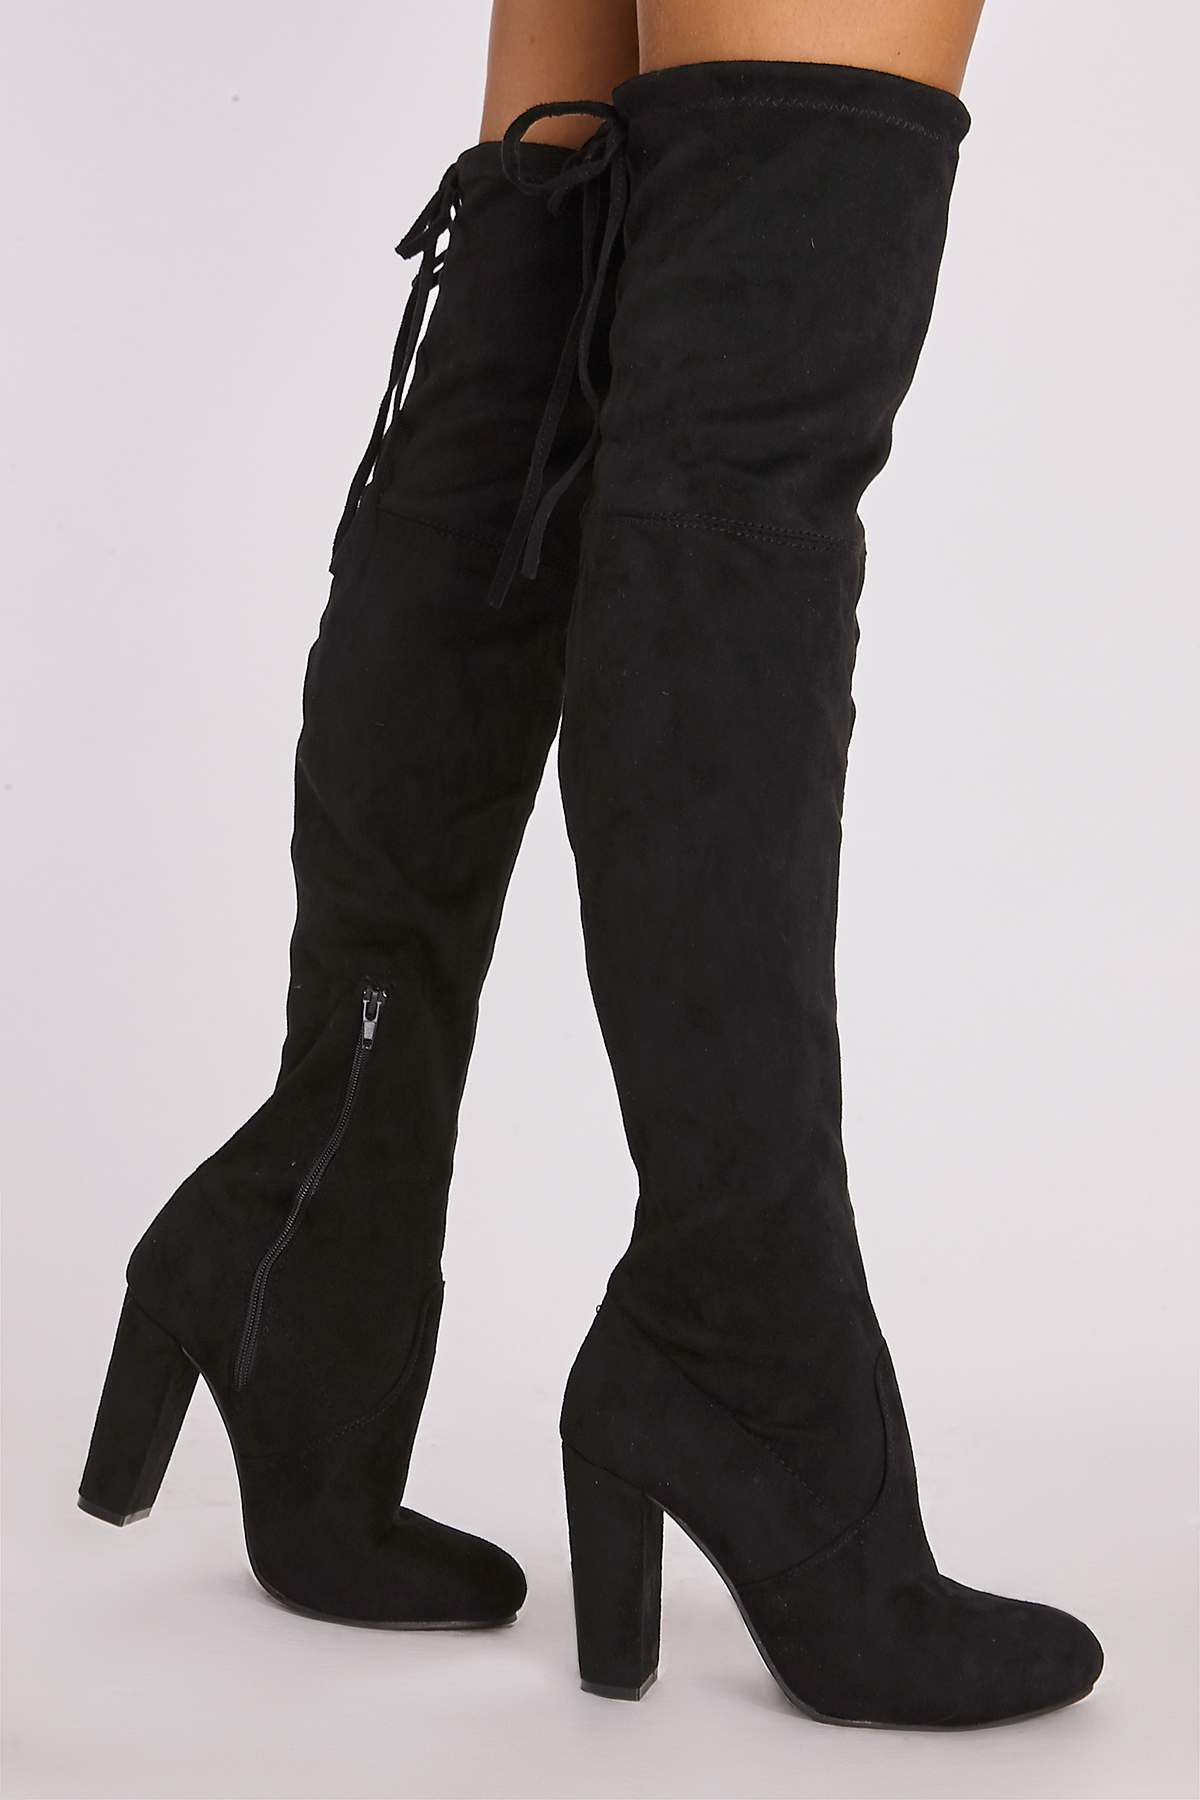 c2f4df0eda8 REMI BLACK FAUX SUEDE OVER THE KNEE HEELED BOOTS